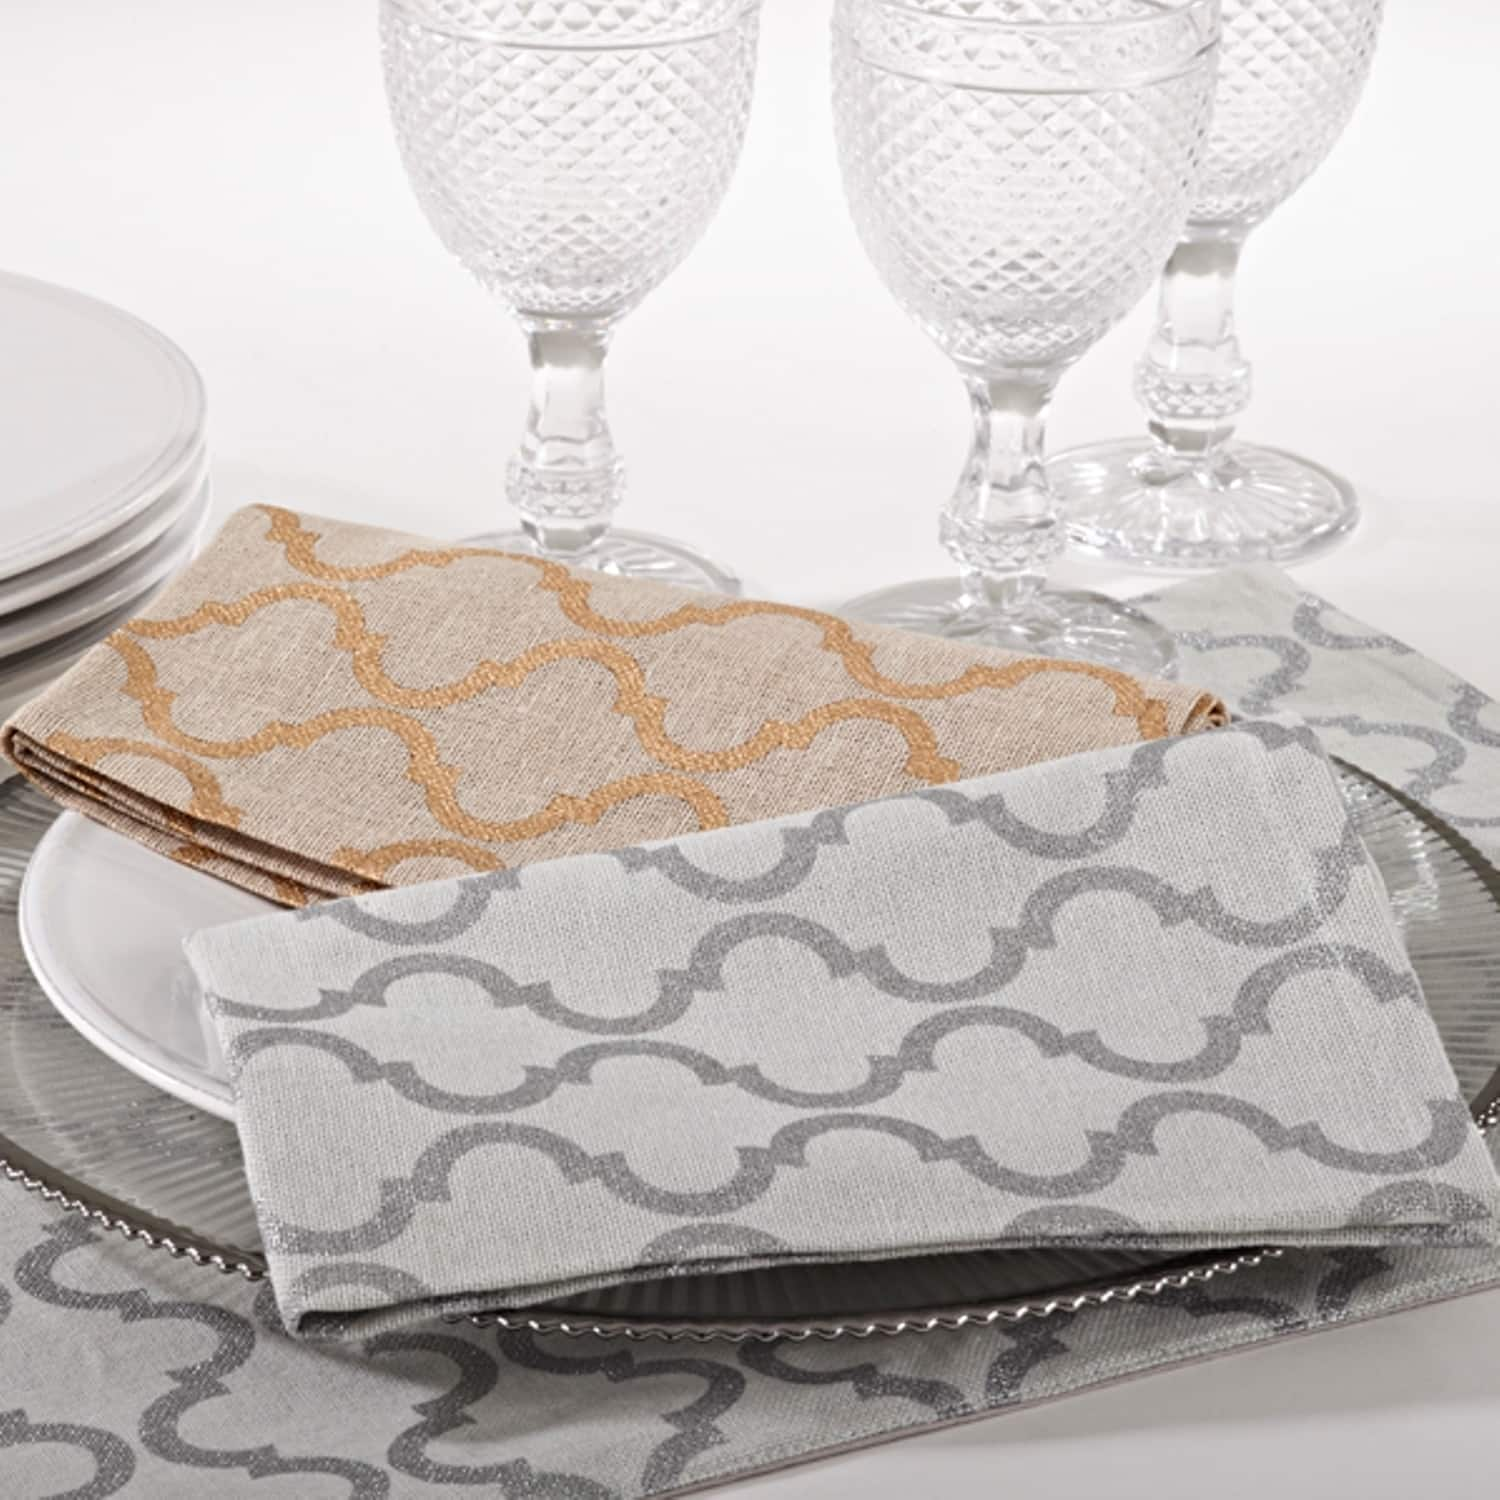 Saro Printed Moroccan Design Napkin (set of 4)